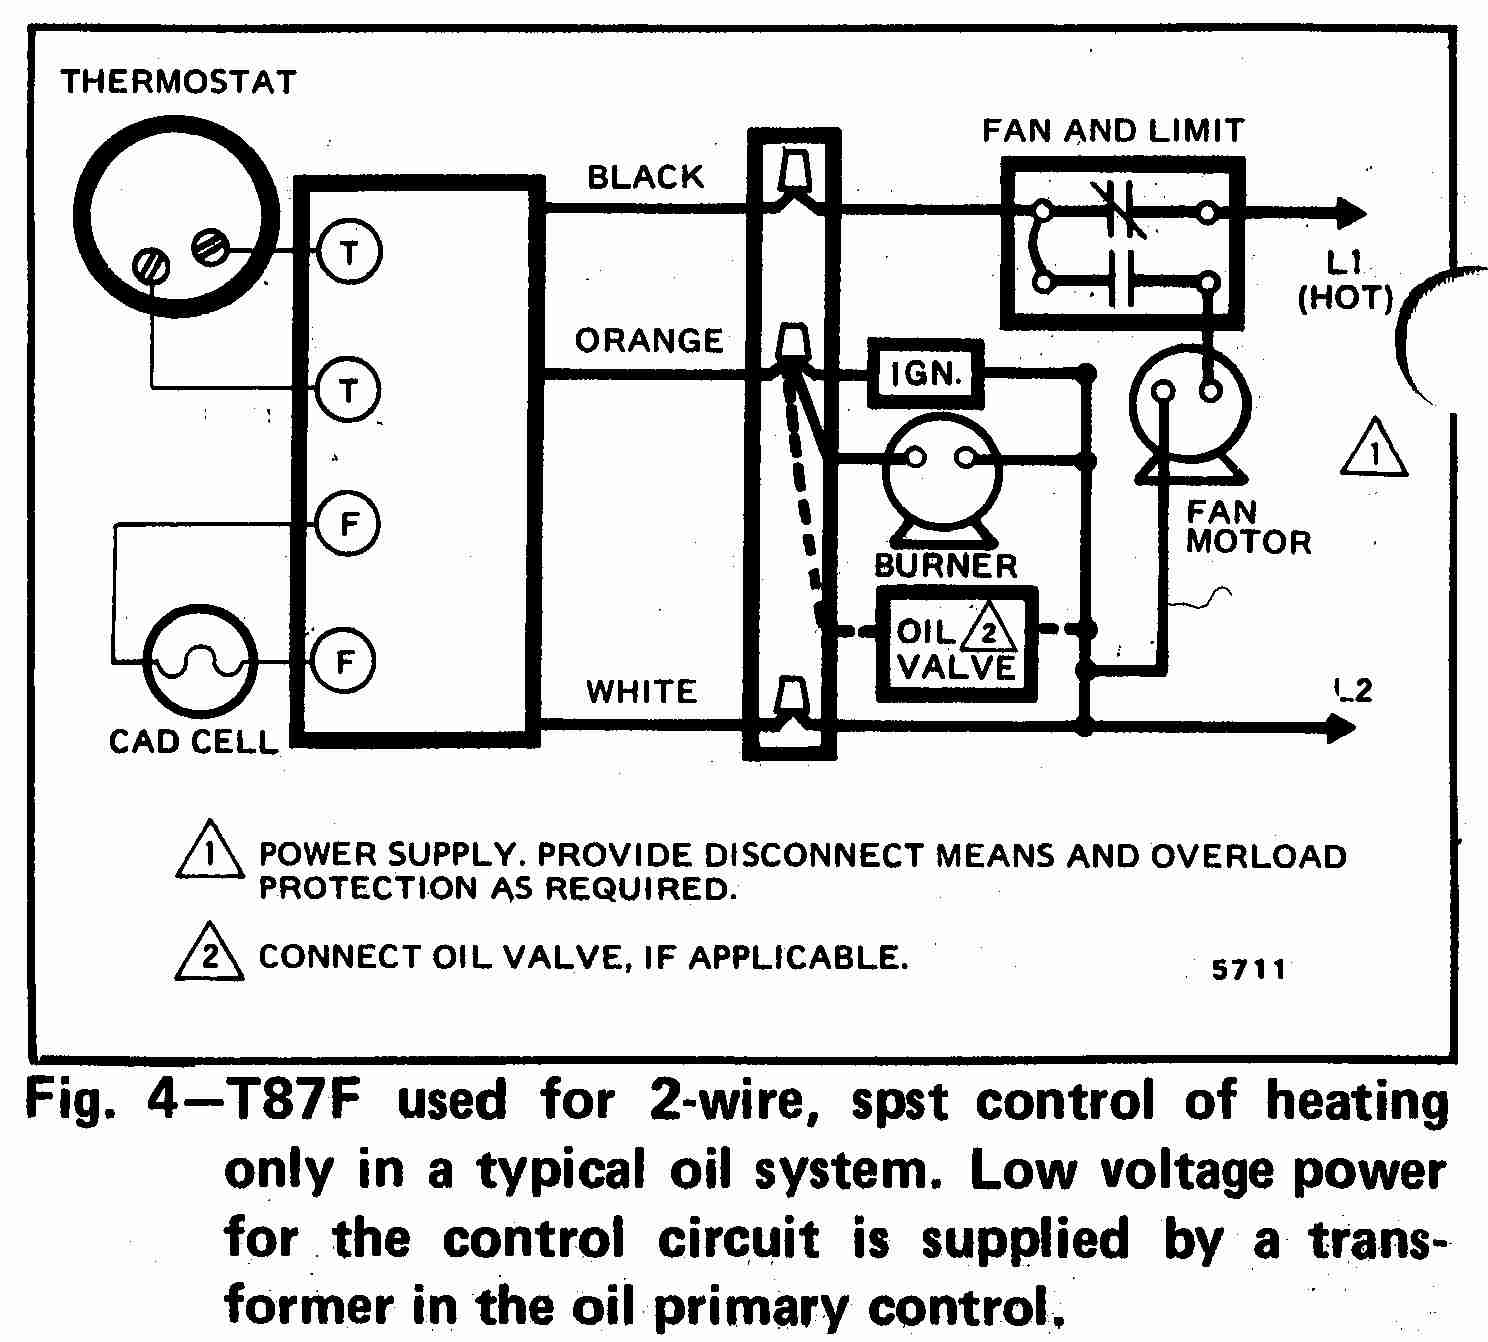 TT_T87F_0002_2W_DJF modine gas heater wiring diagram furnace relay wiring diagram Reznor Gas Heater Wiring Diagram at edmiracle.co